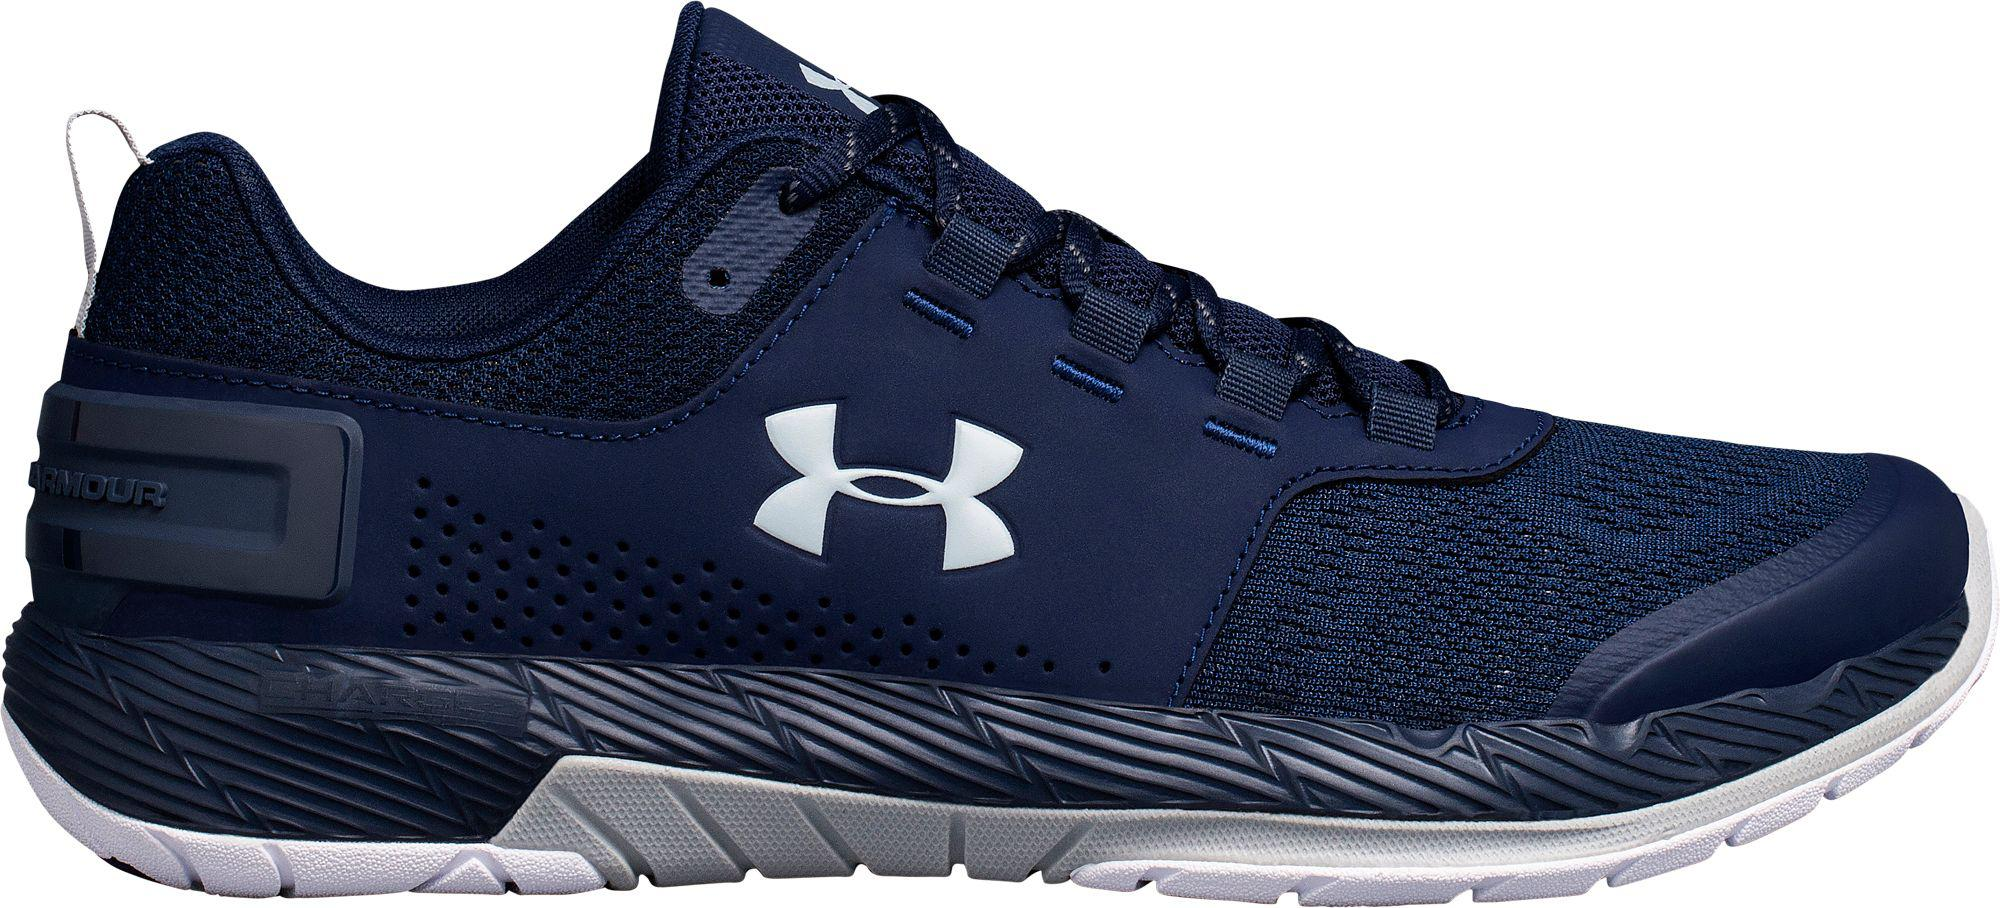 Lyst - Under Armour Commit Tr Ex Training Shoes in Blue for Men f8f66c8c3